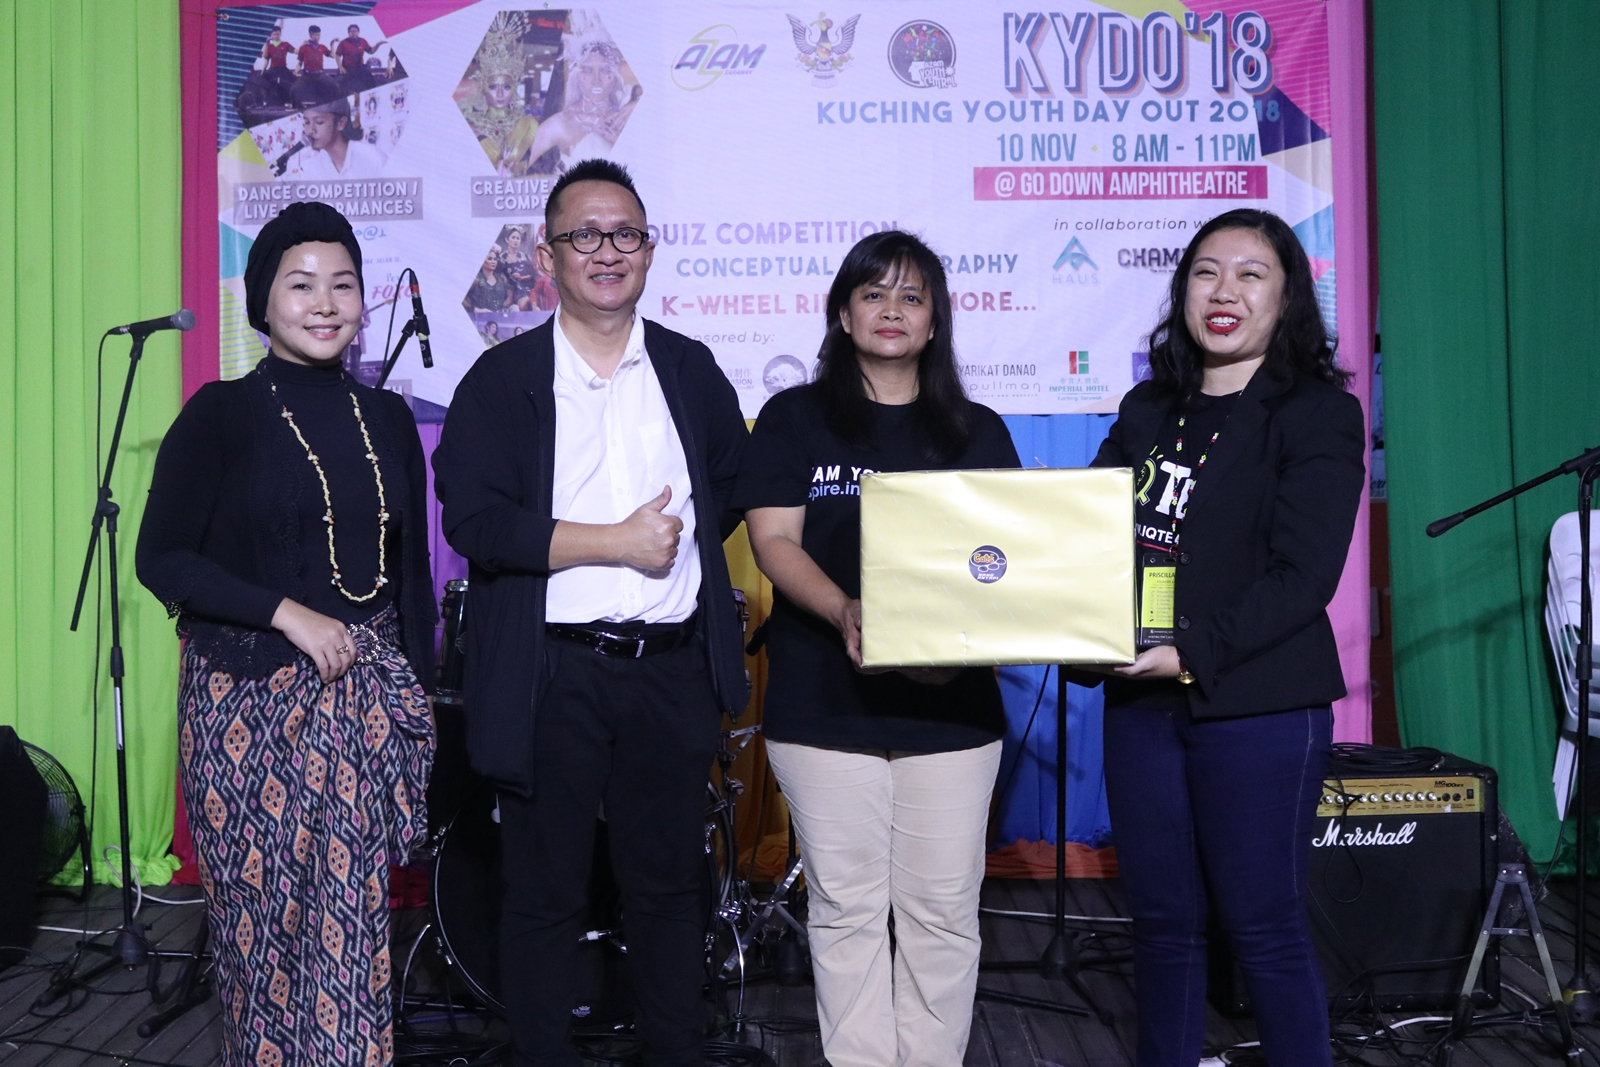 AZAM DCEO Rosalind Yang Misieng (second right) presenting the prize for best pitching to IQTeach as judges Roslan (second left) and Neng Kho Razali look on.